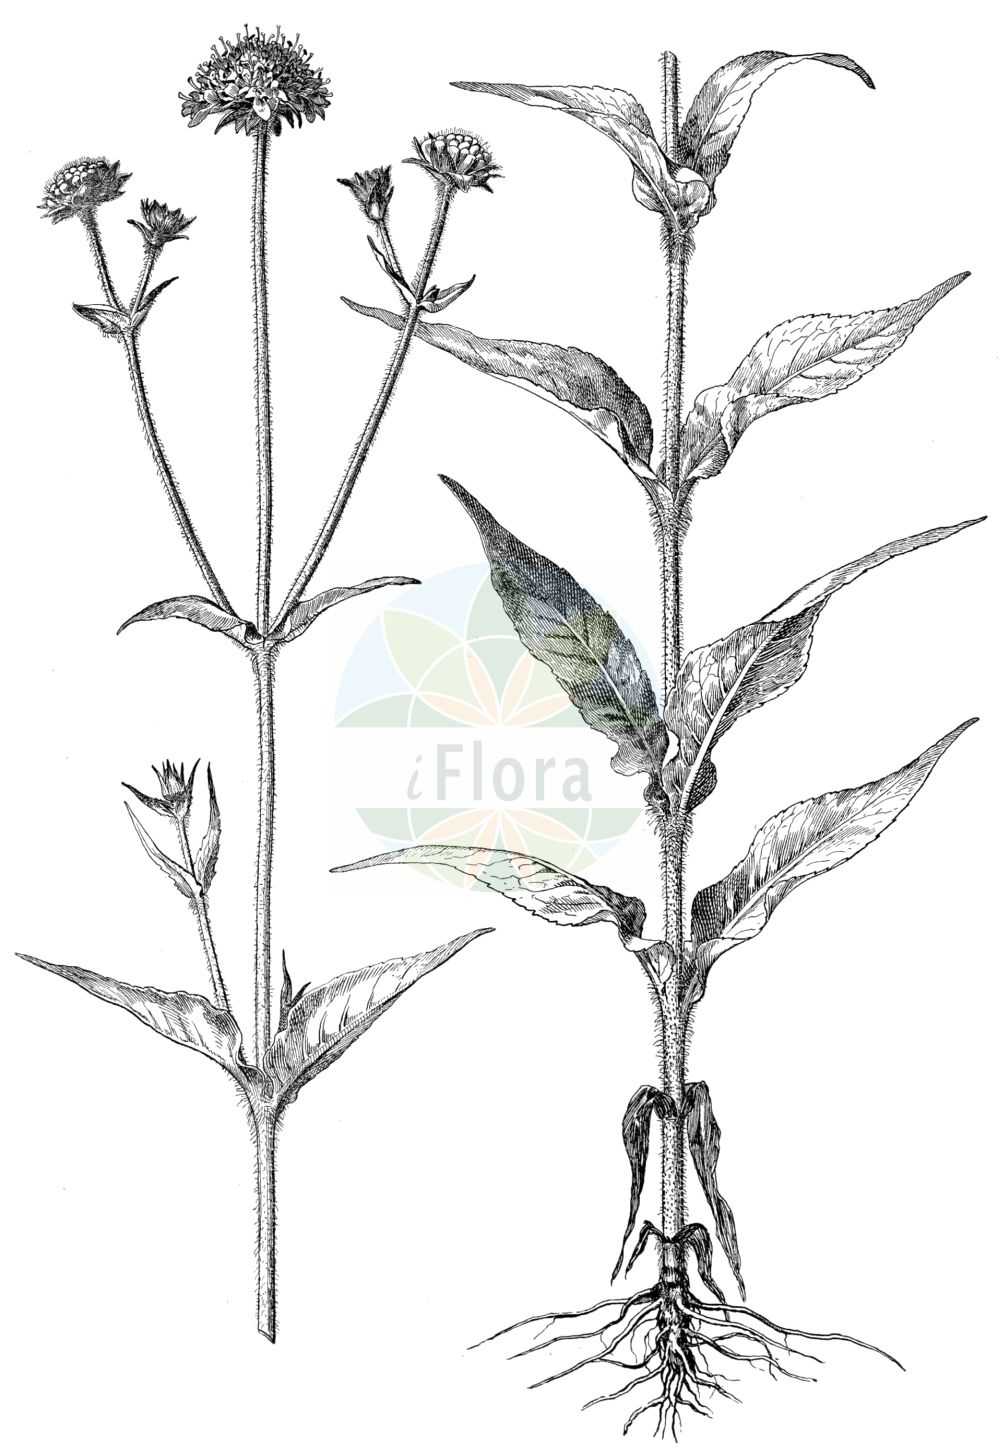 Historische Abbildung von Knautia dipsacifolia (Wald-Witwenblume). Das Bild zeigt Blatt, Bluete, Frucht und Same. ---- Historical Drawing of Knautia dipsacifolia (Wald-Witwenblume).The image is showing leaf, flower, fruit and seed.(Knautia dipsacifolia,Wald-Witwenblume,Knautia chabertii,Knautia dipsacifolia,Knautia sylvatica,Knautia sylvatica (L.) Duby,Scabiosa dipsacifolia,Trichera sylvatica,Wald-Witwenblume,Knautia,Witwenblume,Scabious,Caprifoliaceae,Geissblattgewaechse,Honeysuckle family,Blatt,Bluete,Frucht,Same,leaf,flower,fruit,seed,Oltmanns (1927))